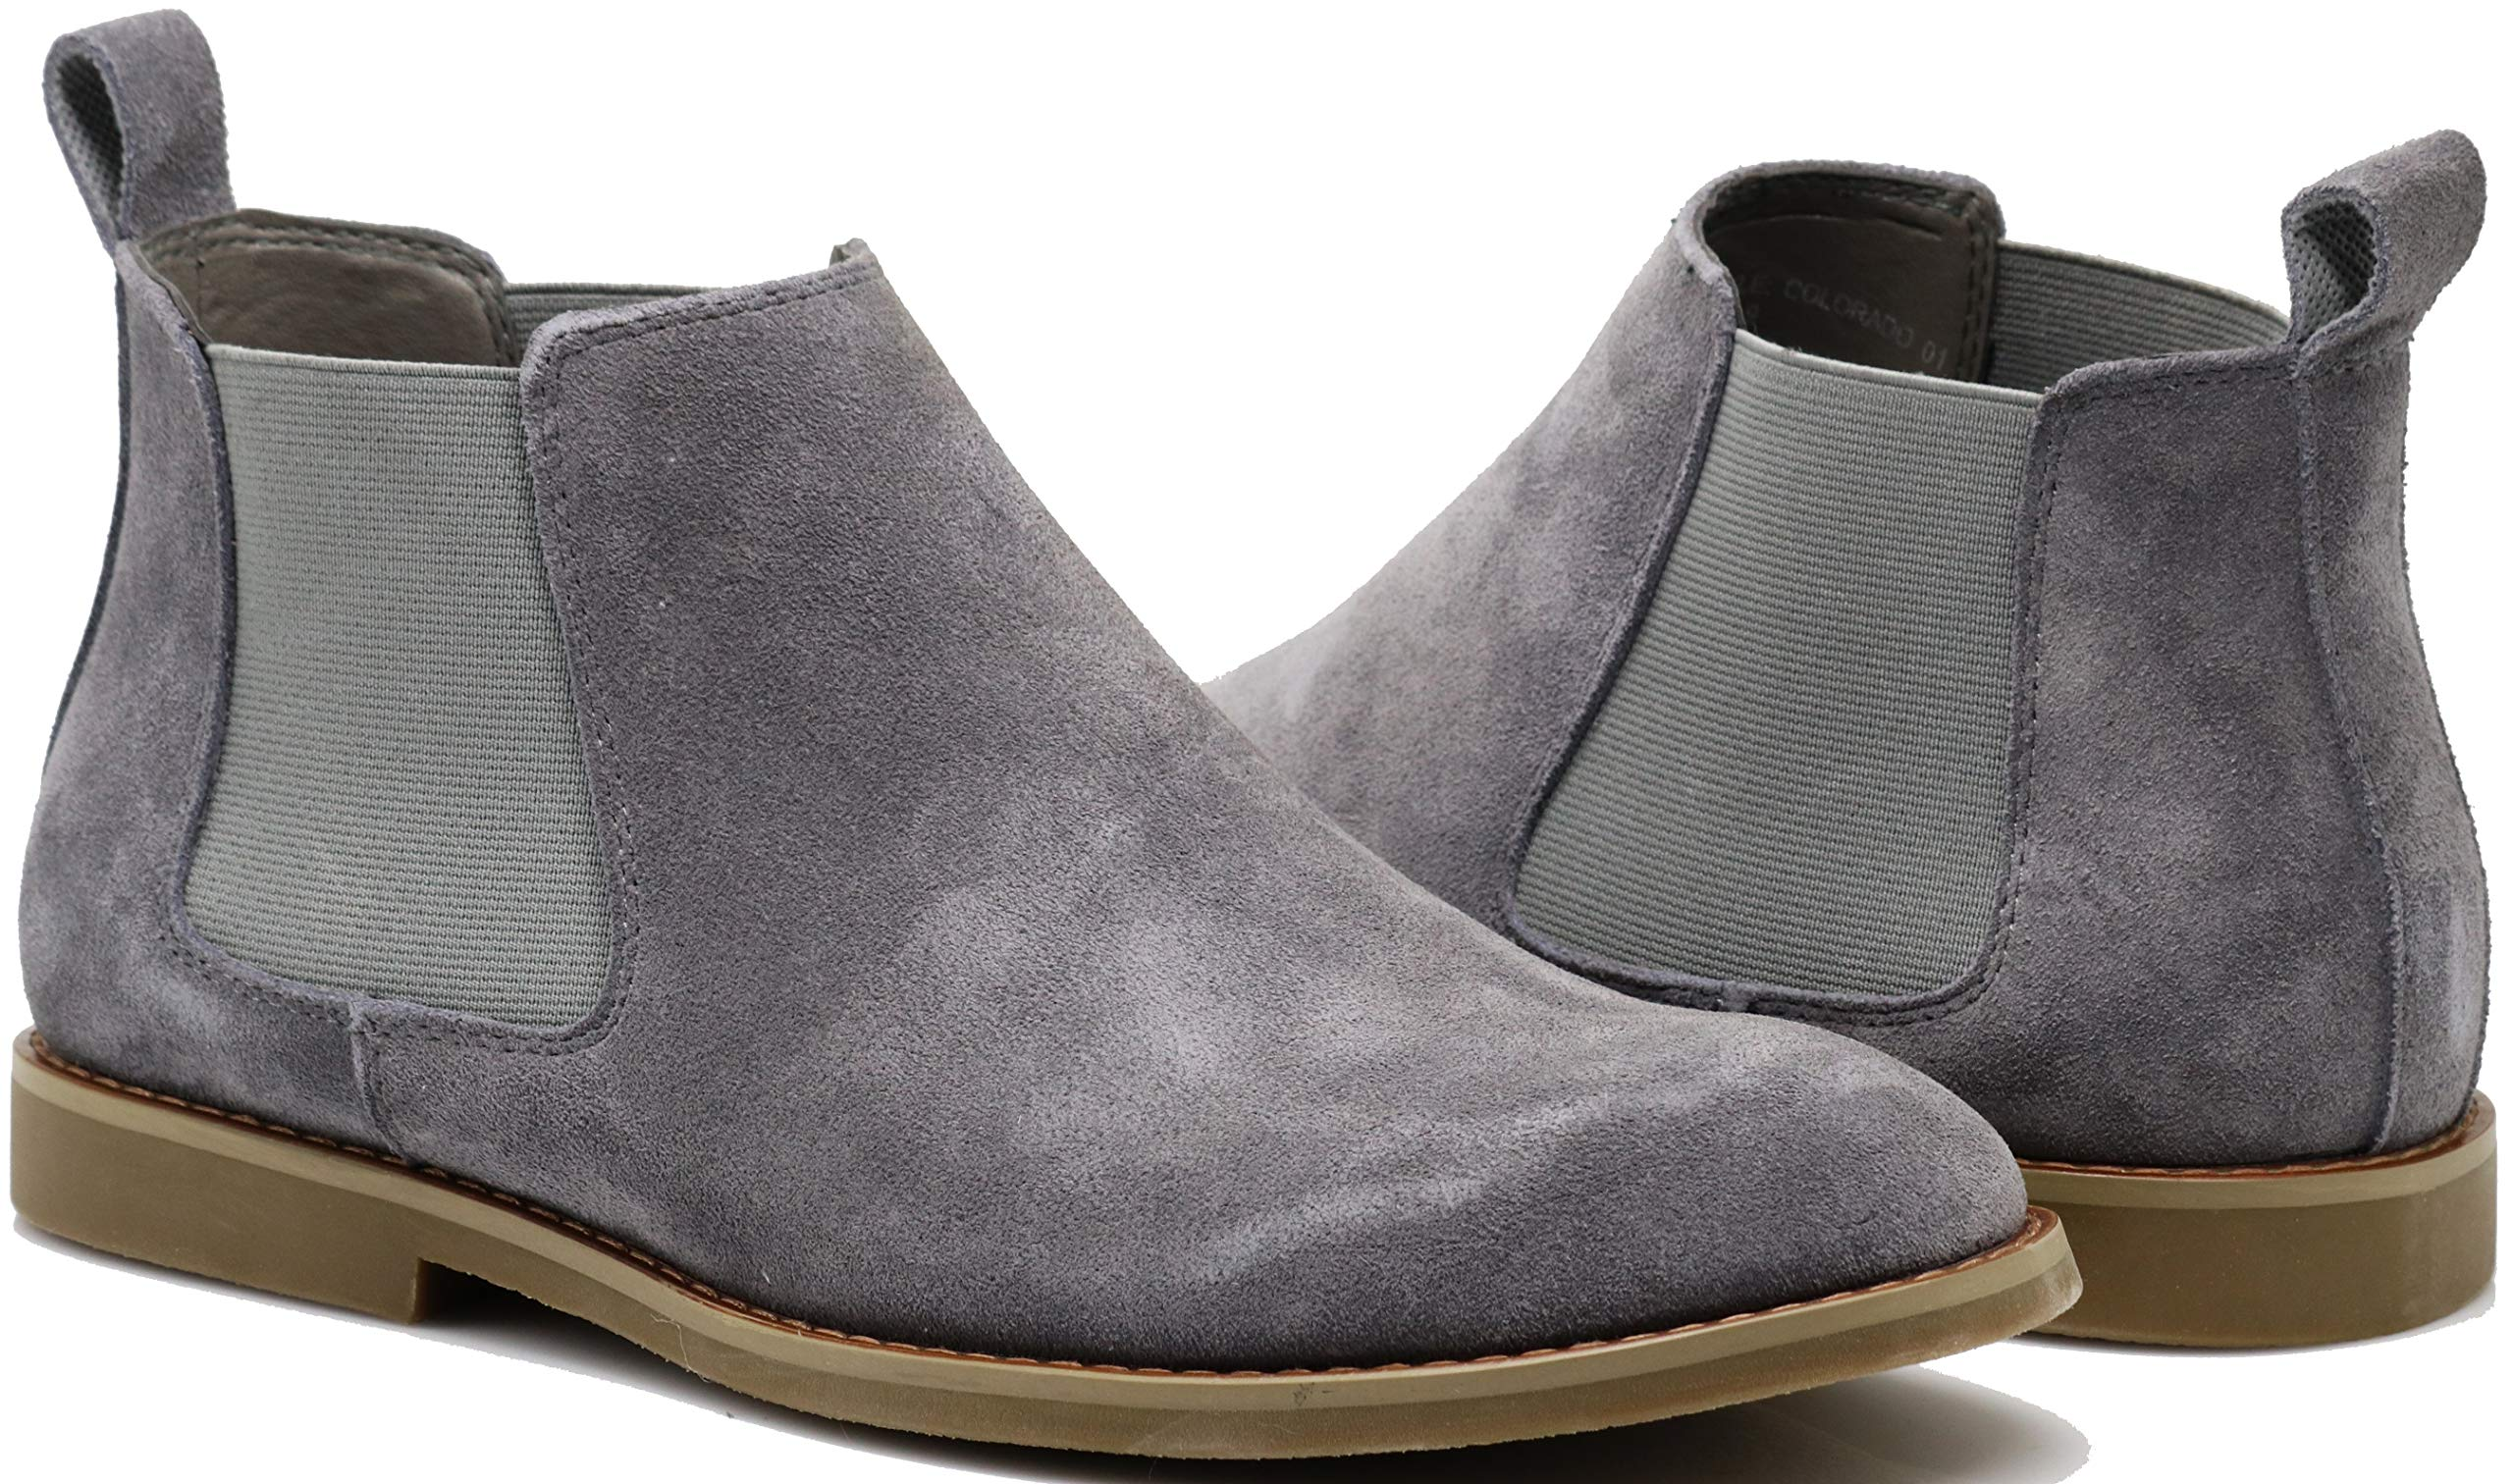 Enzo Romeo CO01 Men's Chelsea Boots Dress Fashion Slip On Suede Leather Ankle Boots (10.5 D(M) US, Grey)